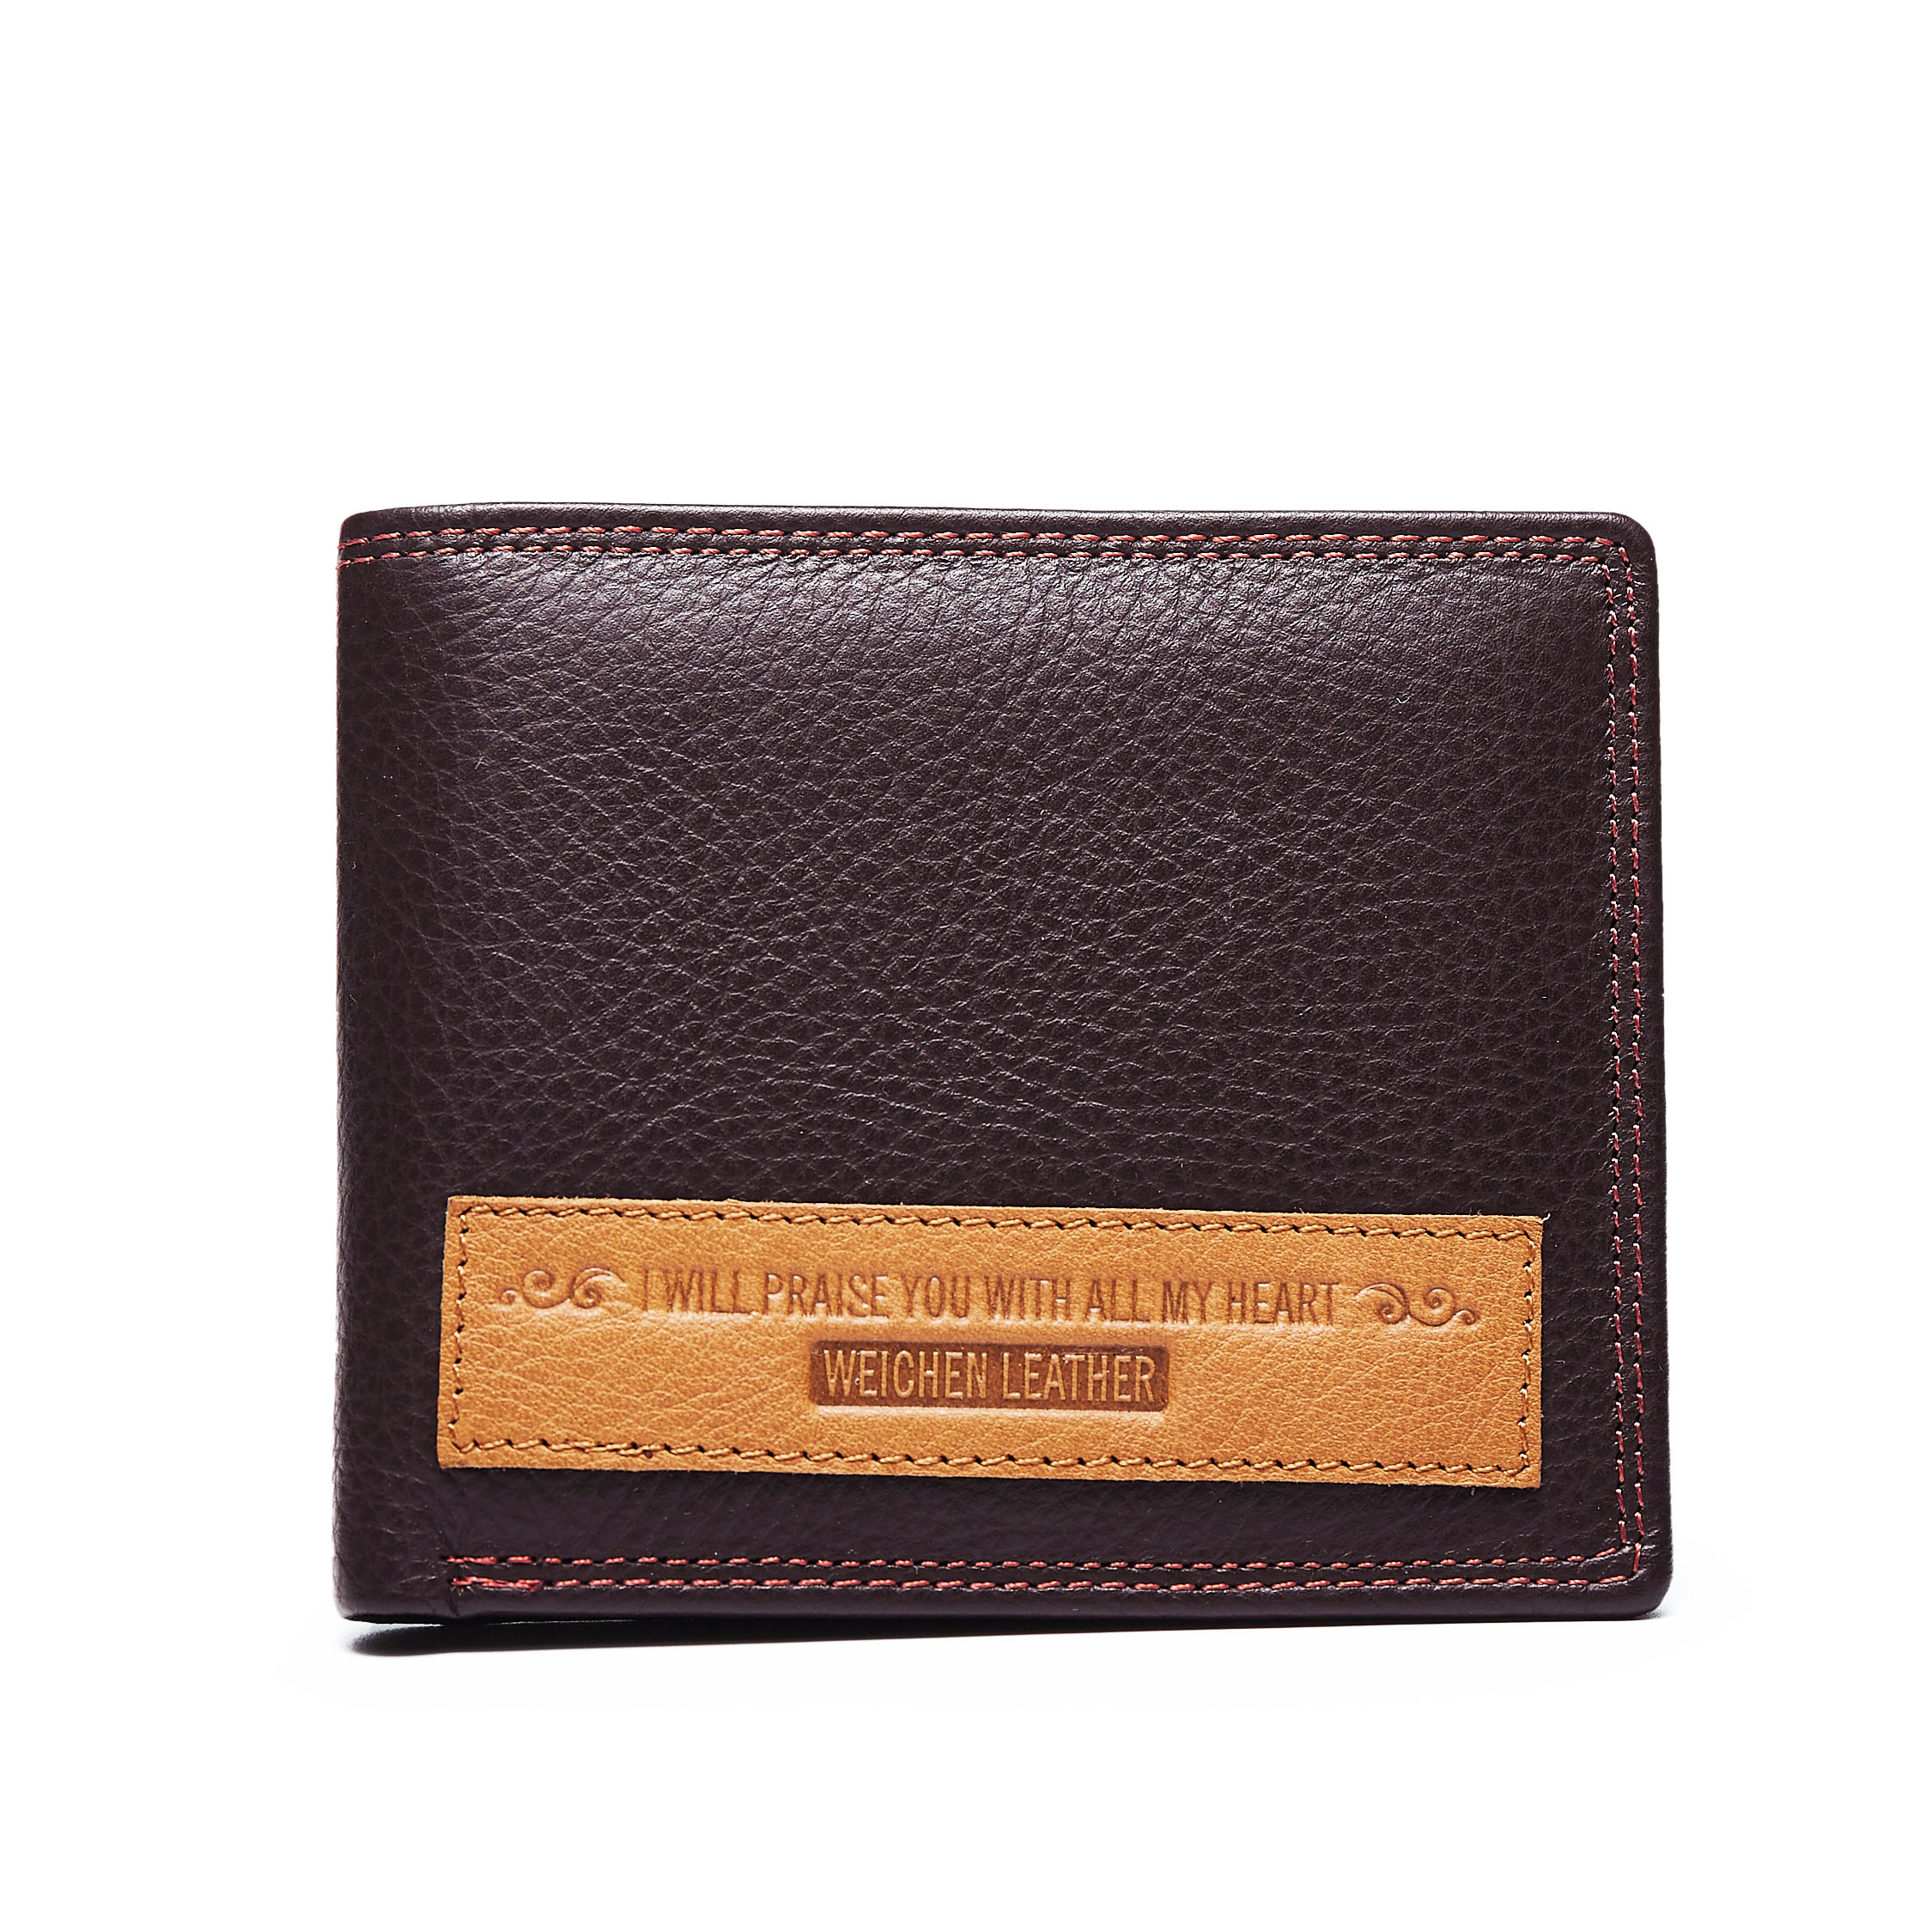 Available Fashion Bifold with Credit Card Slot Genuine Leather Wallet for Men